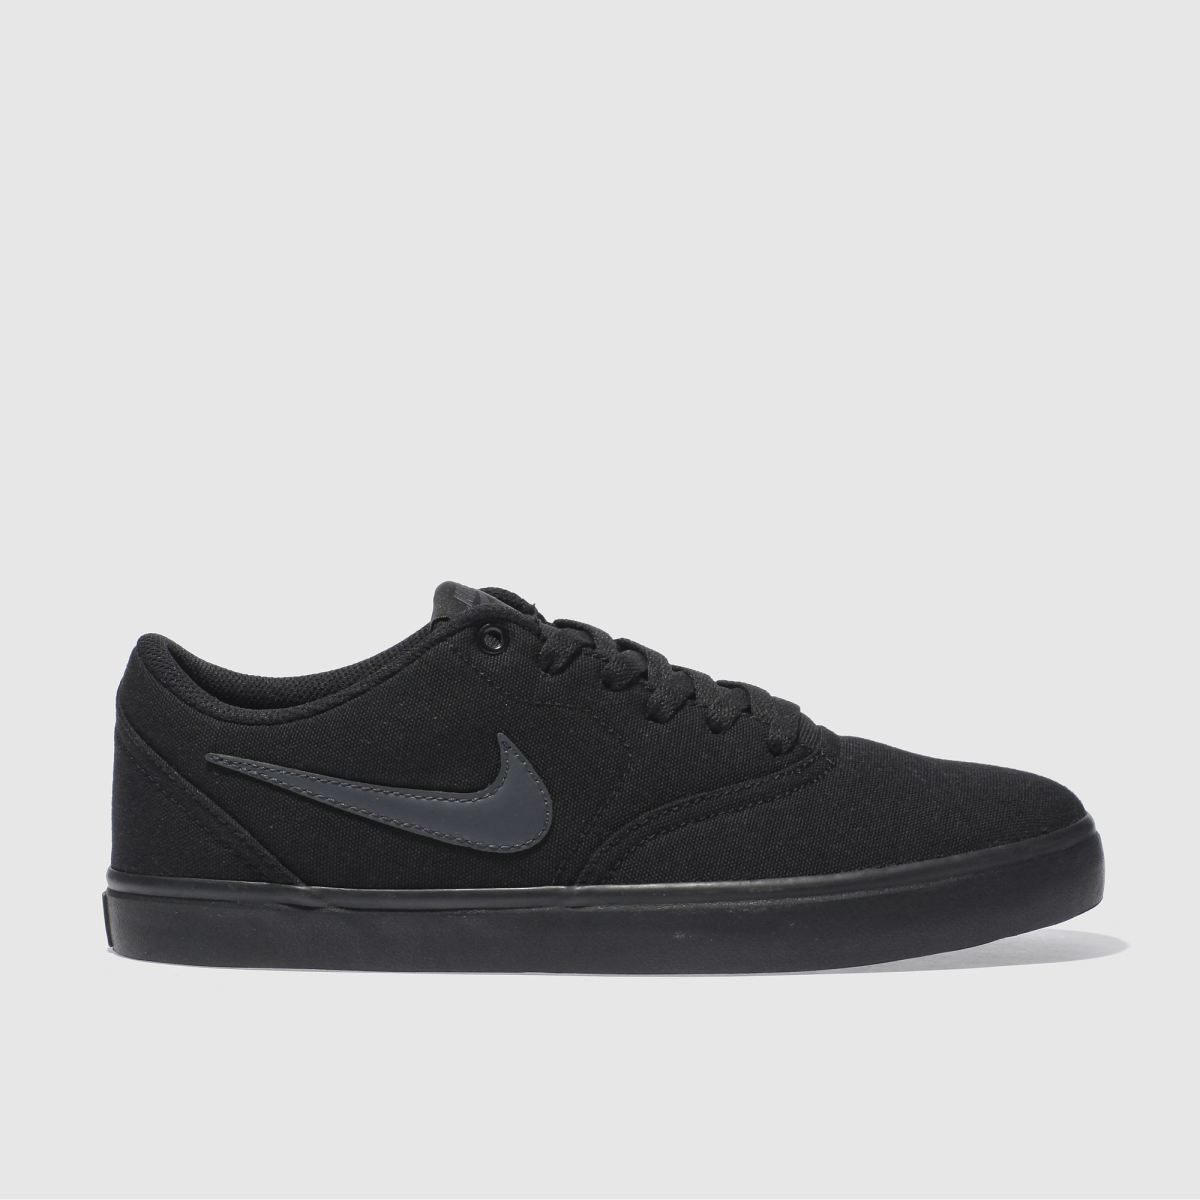 05e9c82a674 Cheap nike skate black Buy Online  OFF46% Discounted